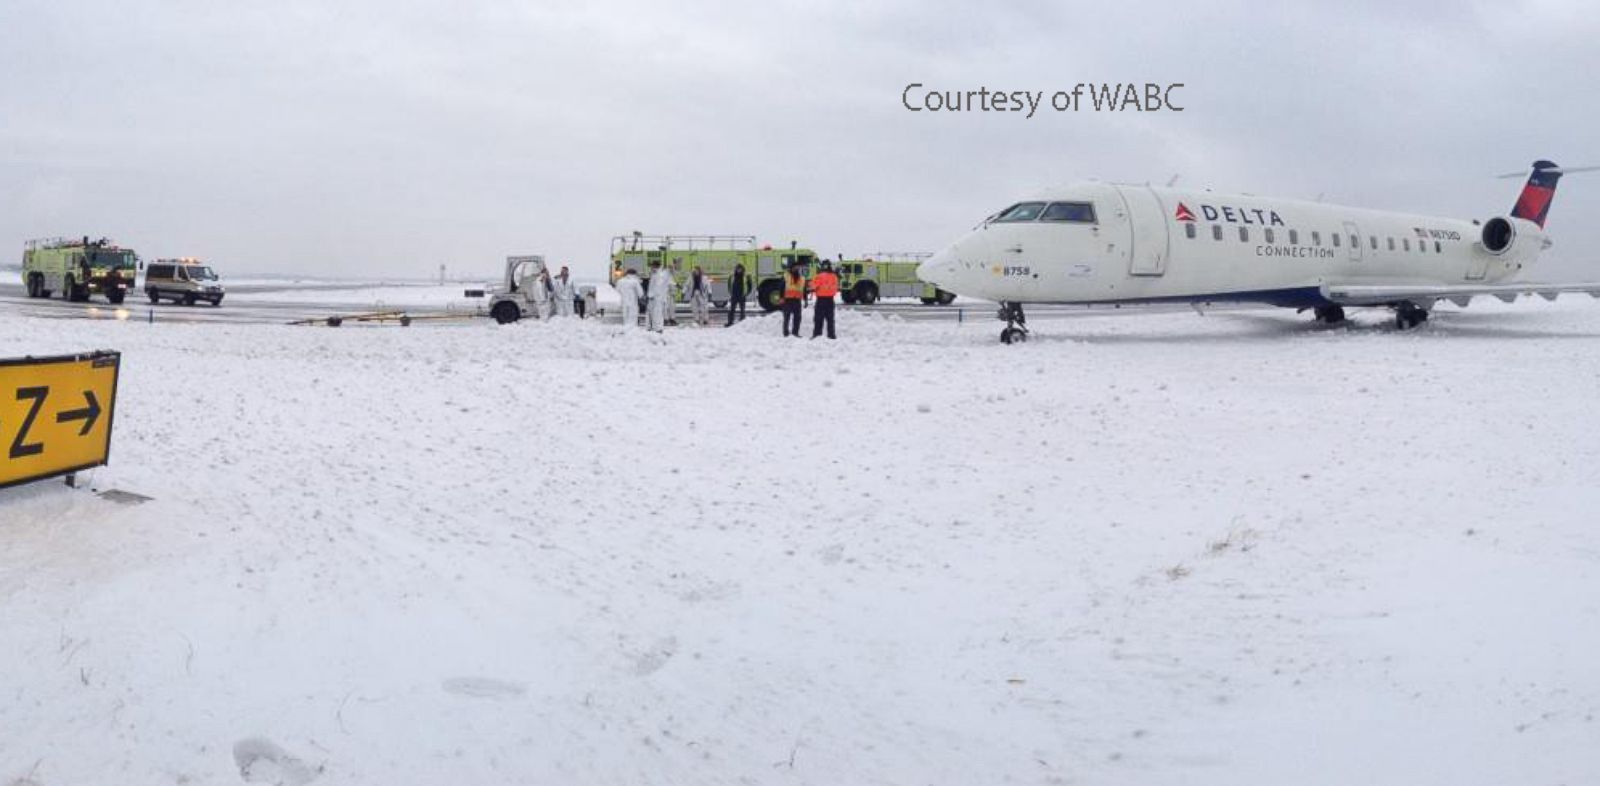 PHOTO: A plane skidded off the runway and into the snow at Kennedy International Airport, Jan. 5, 2014. Port Authority Police Crash, Fire, Rescue Unit responded and actually had to dig aircraft out of snow.